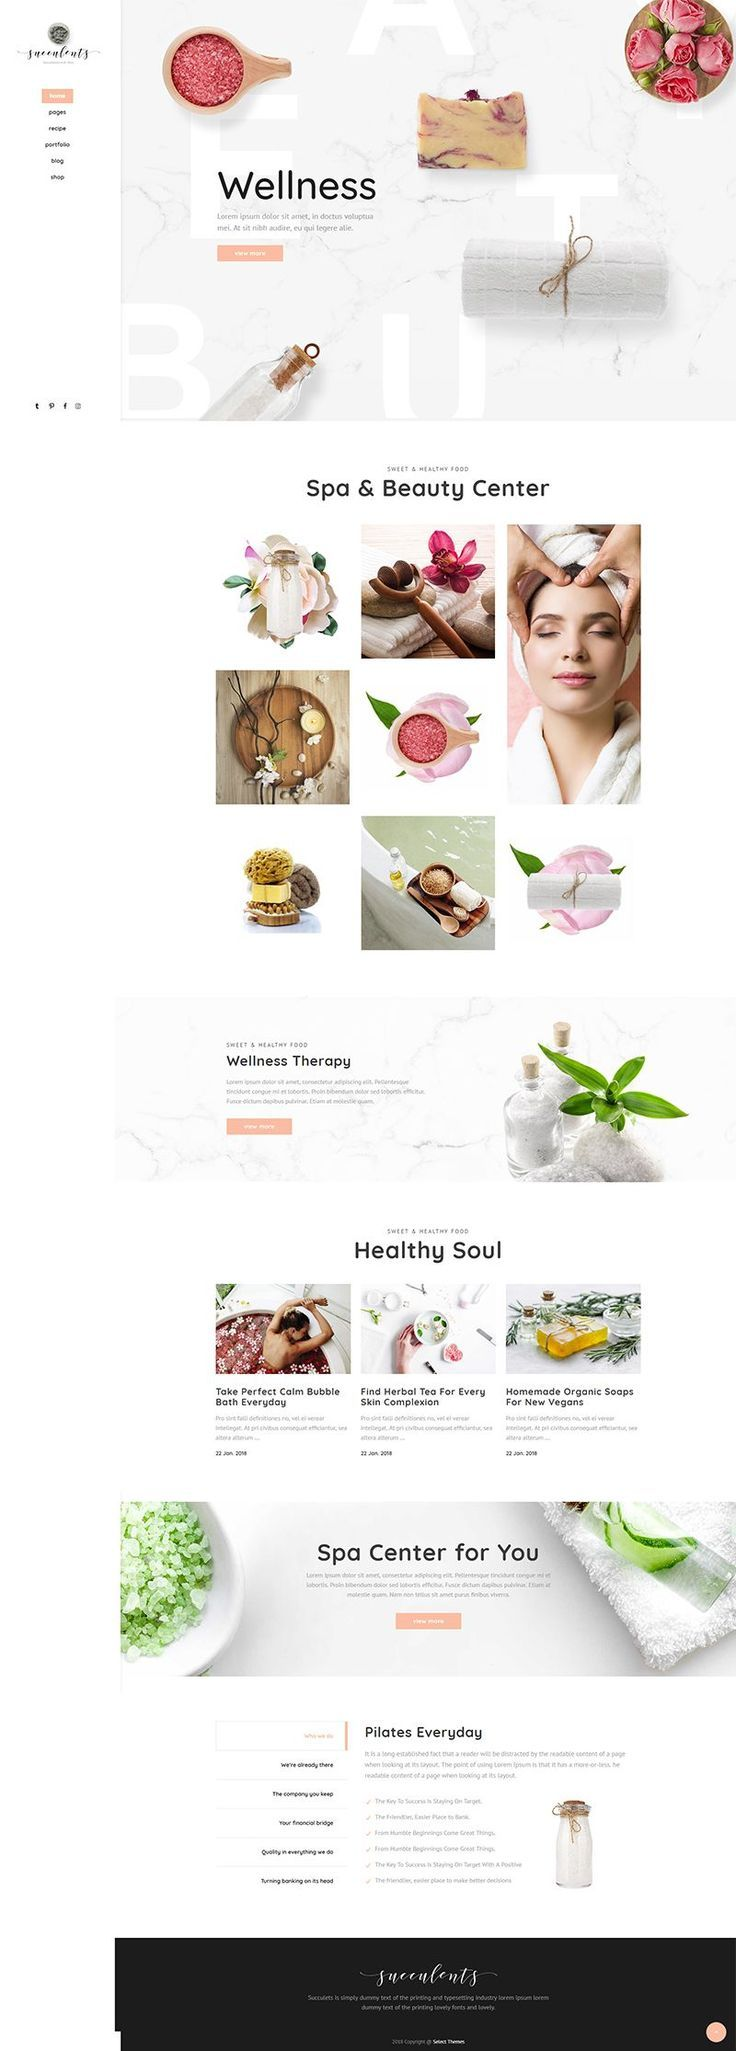 Succulents WordPress theme is made for business from healthy food businesses to skin care industry....